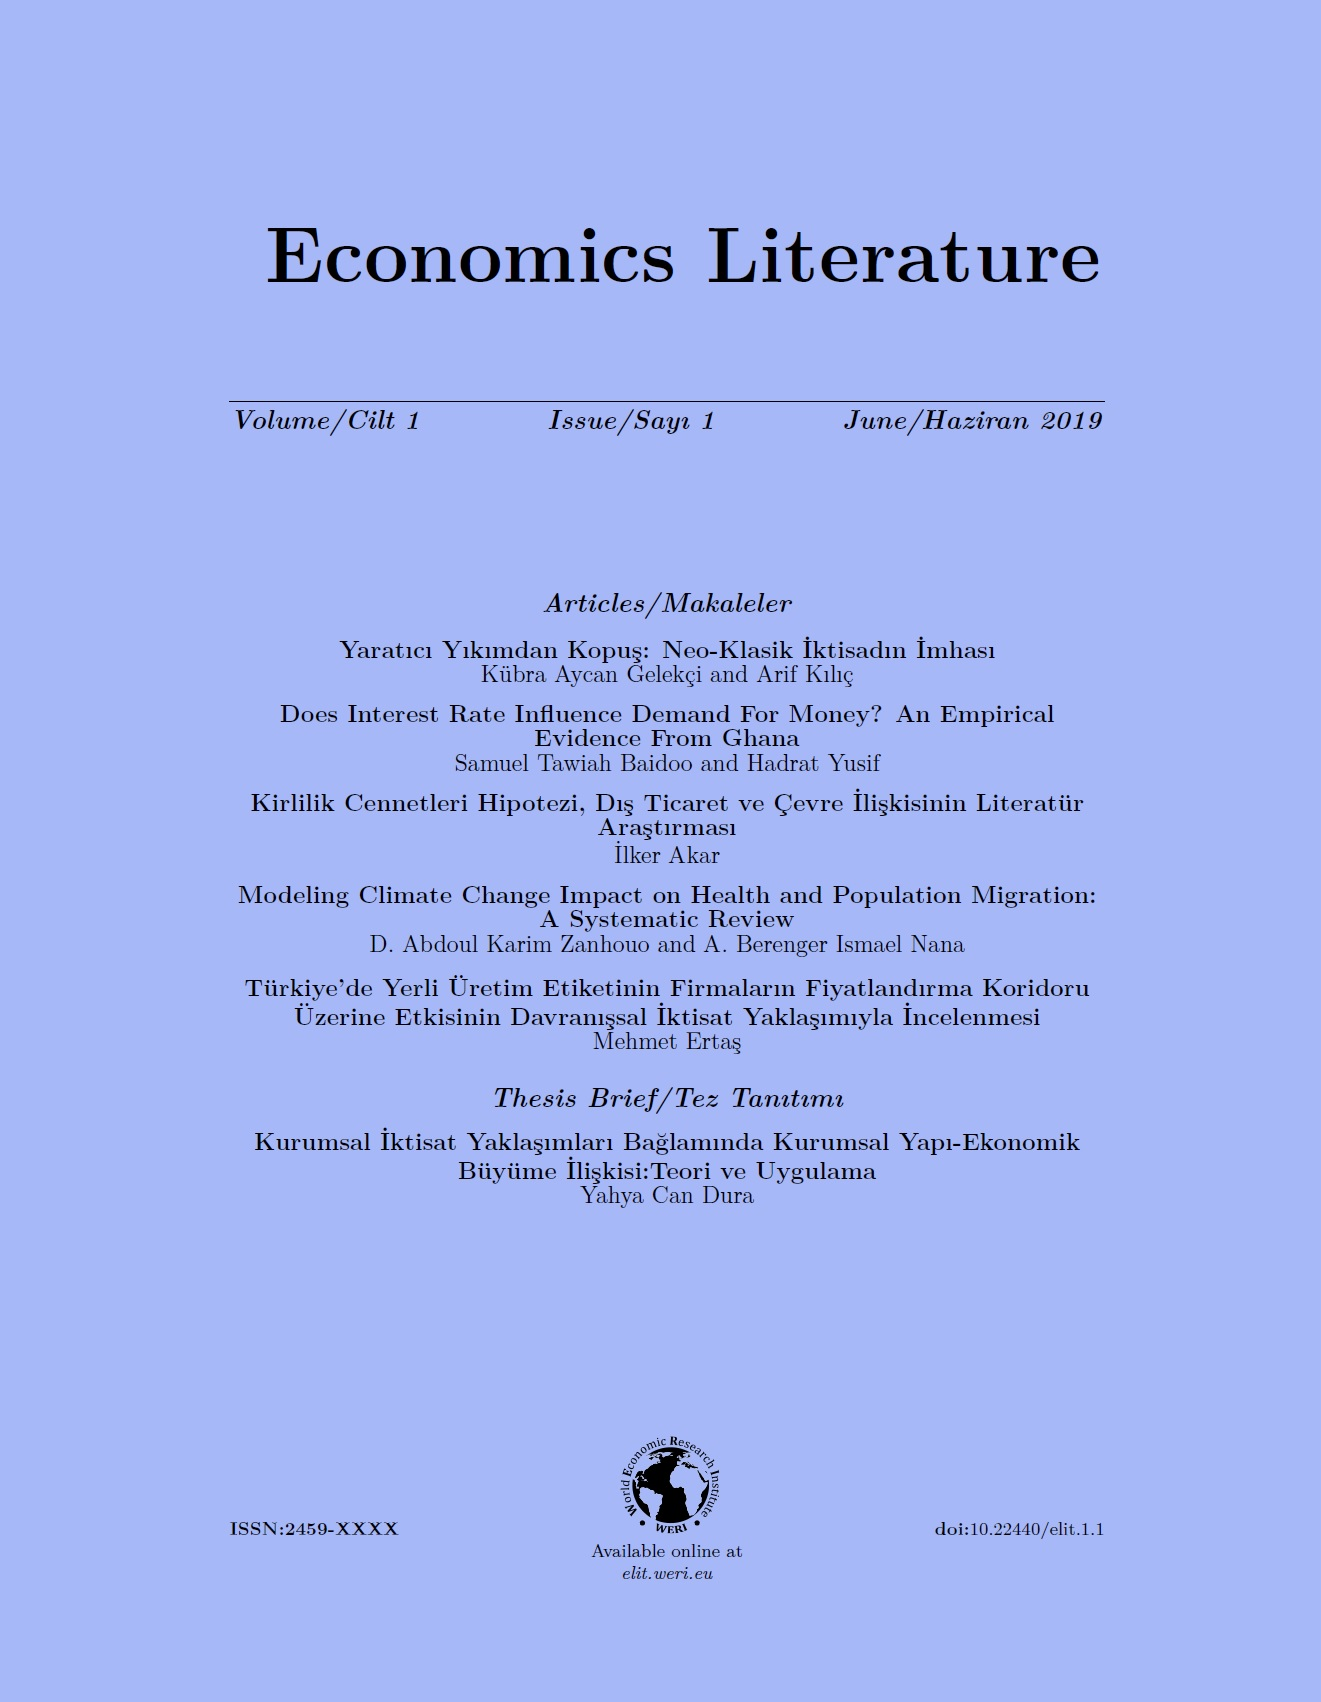 Economics Literature Vol 1 Issue 1